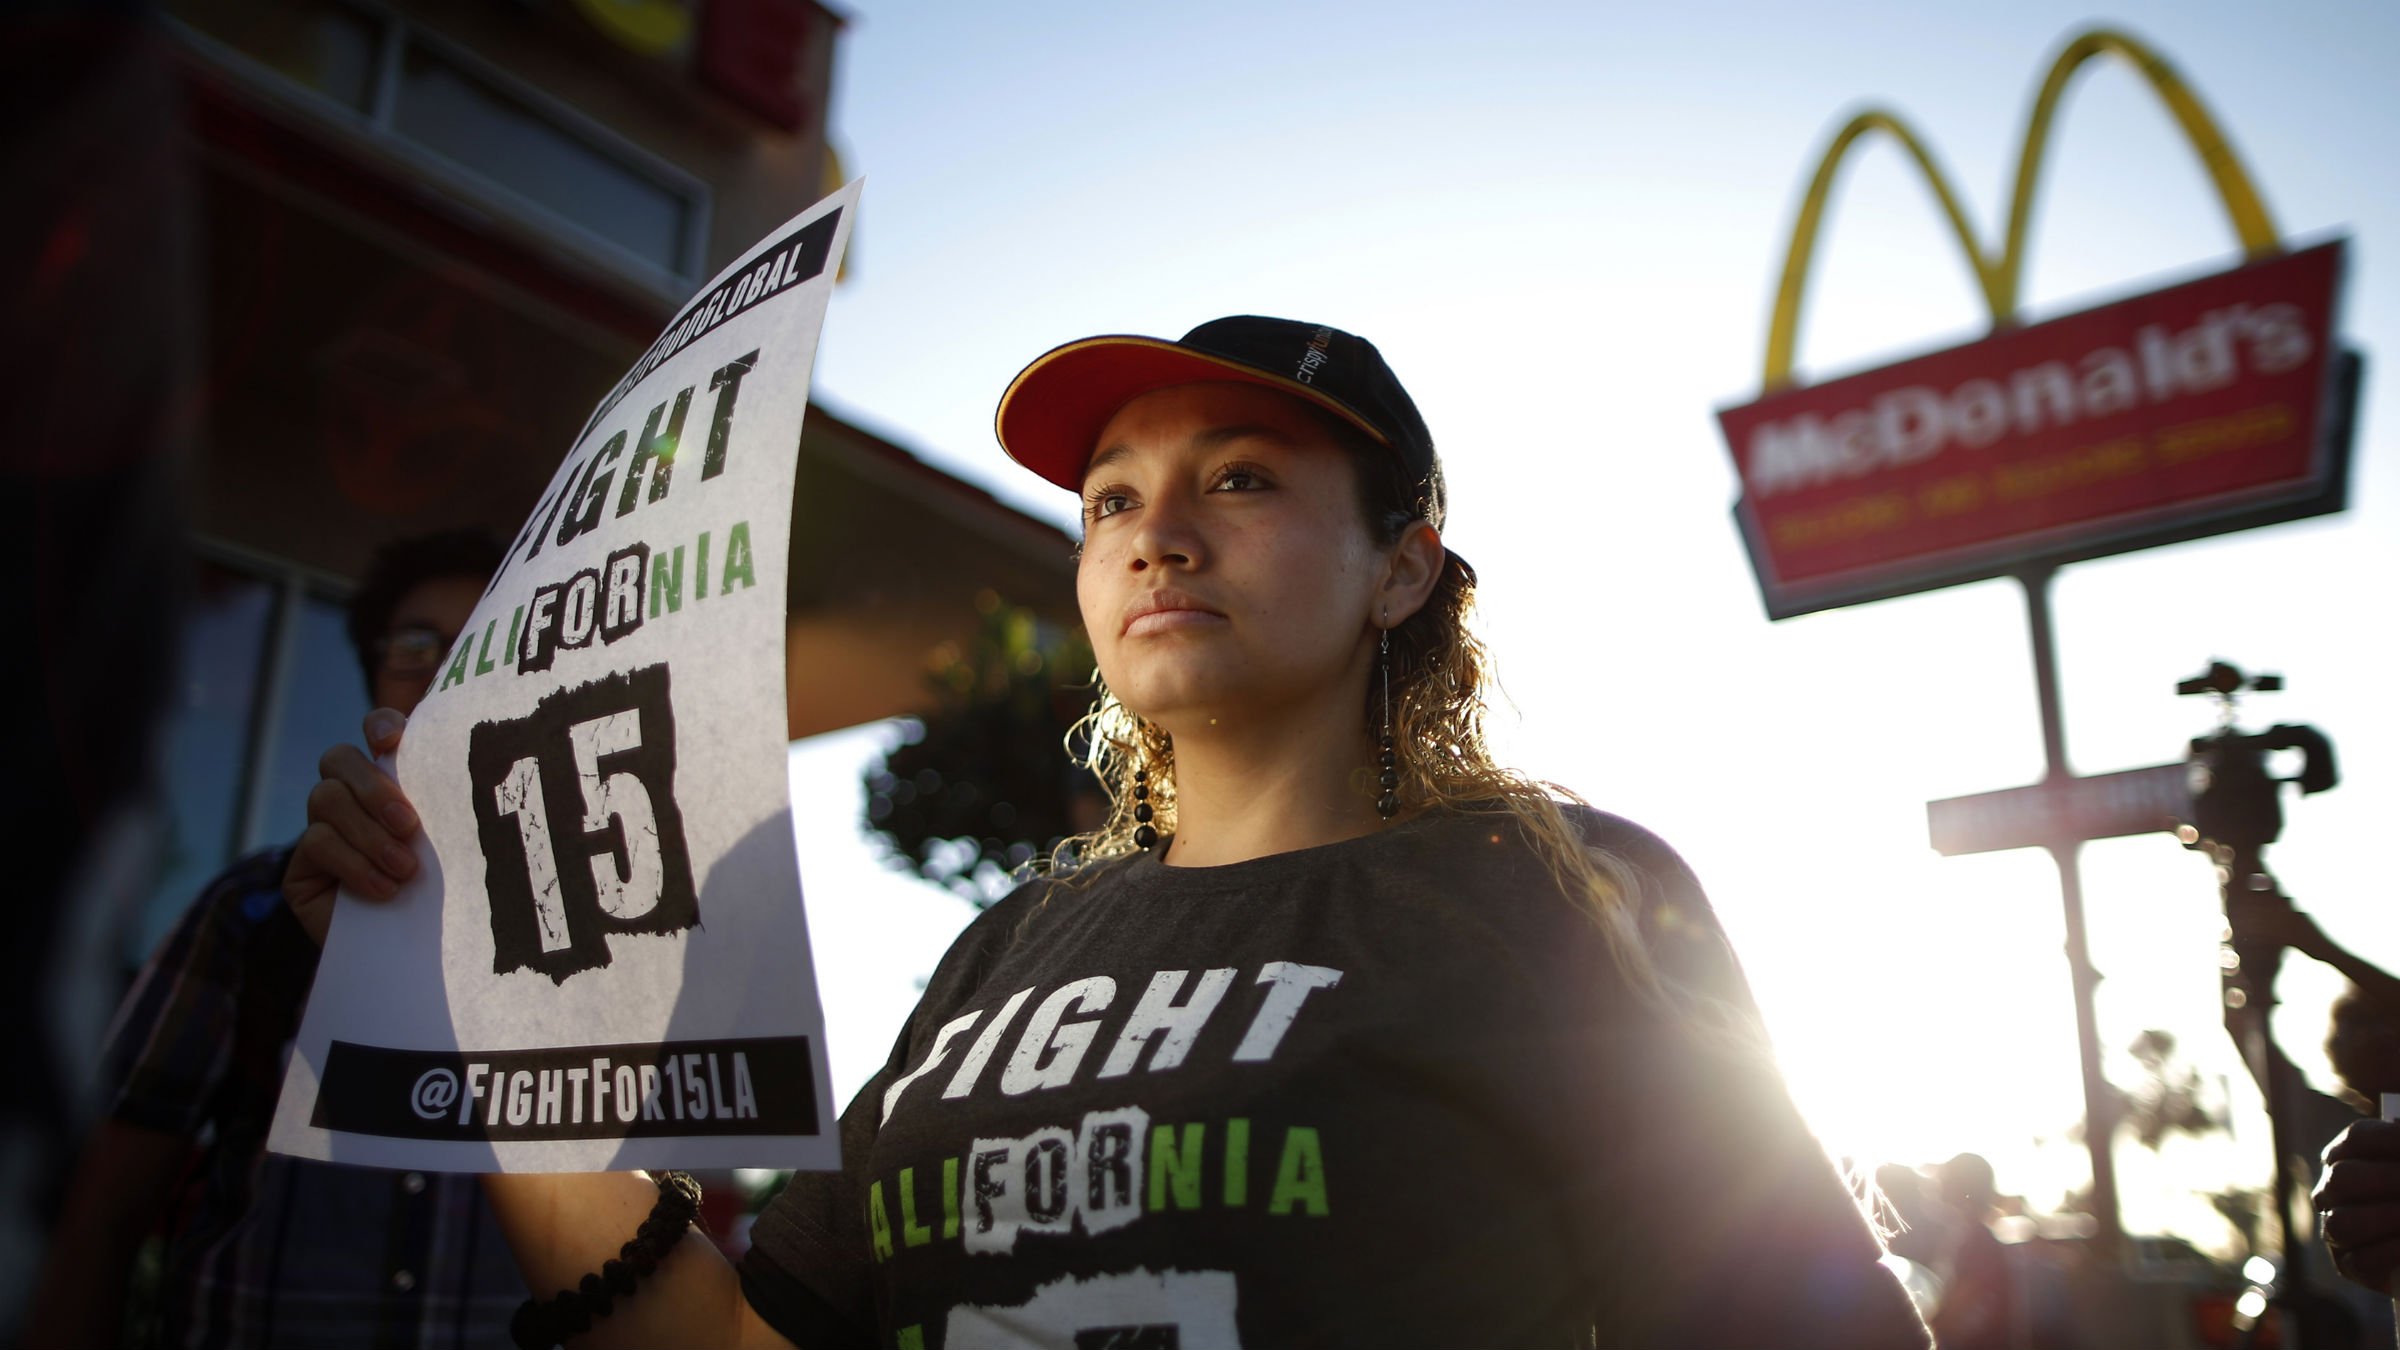 Demonstrators take part in a protest to demand higher wages for fast-food workers outside McDonald's in Los Angeles, California May 15, 2014. The march was held as part of an international protest by fast-food workers who planned to go on strikes in 150 cities across the United States and demonstrations in 33 other countries on Thursday to demand higher pay and better working conditions.